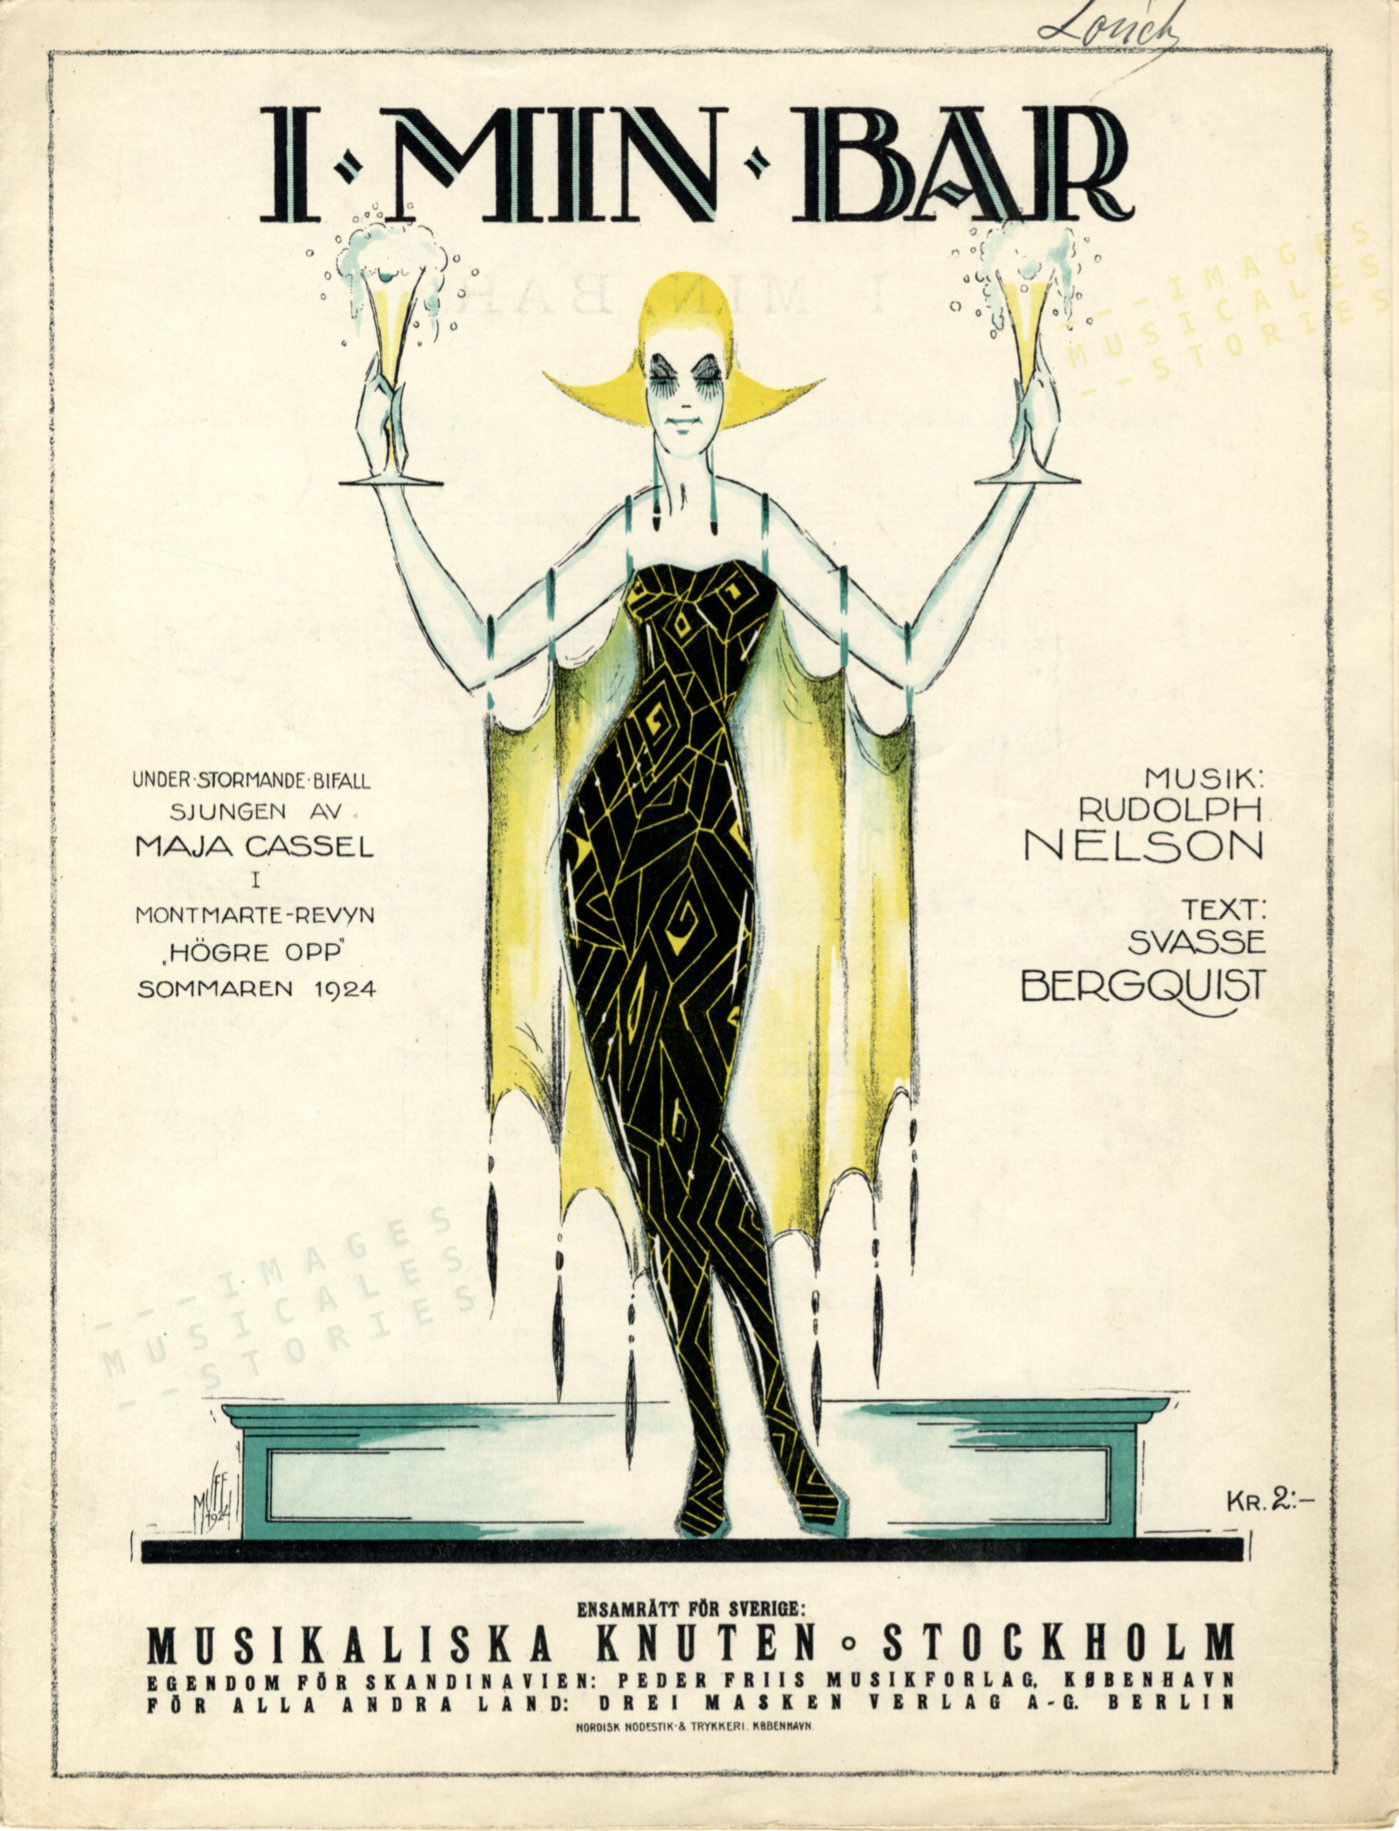 'I min bar', music by Rudolph Nelson (1924 - click image to enlarge